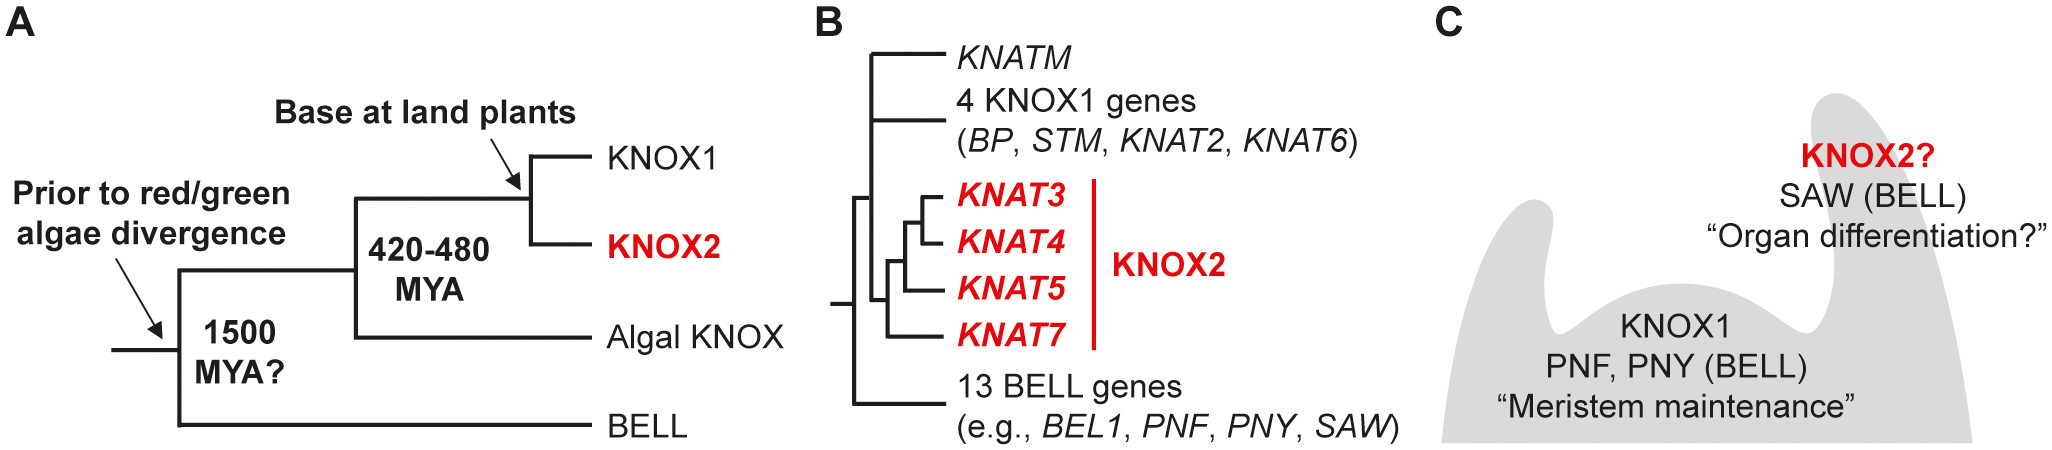 Phylogeny and expression patterns of KNOX and BELL genes.